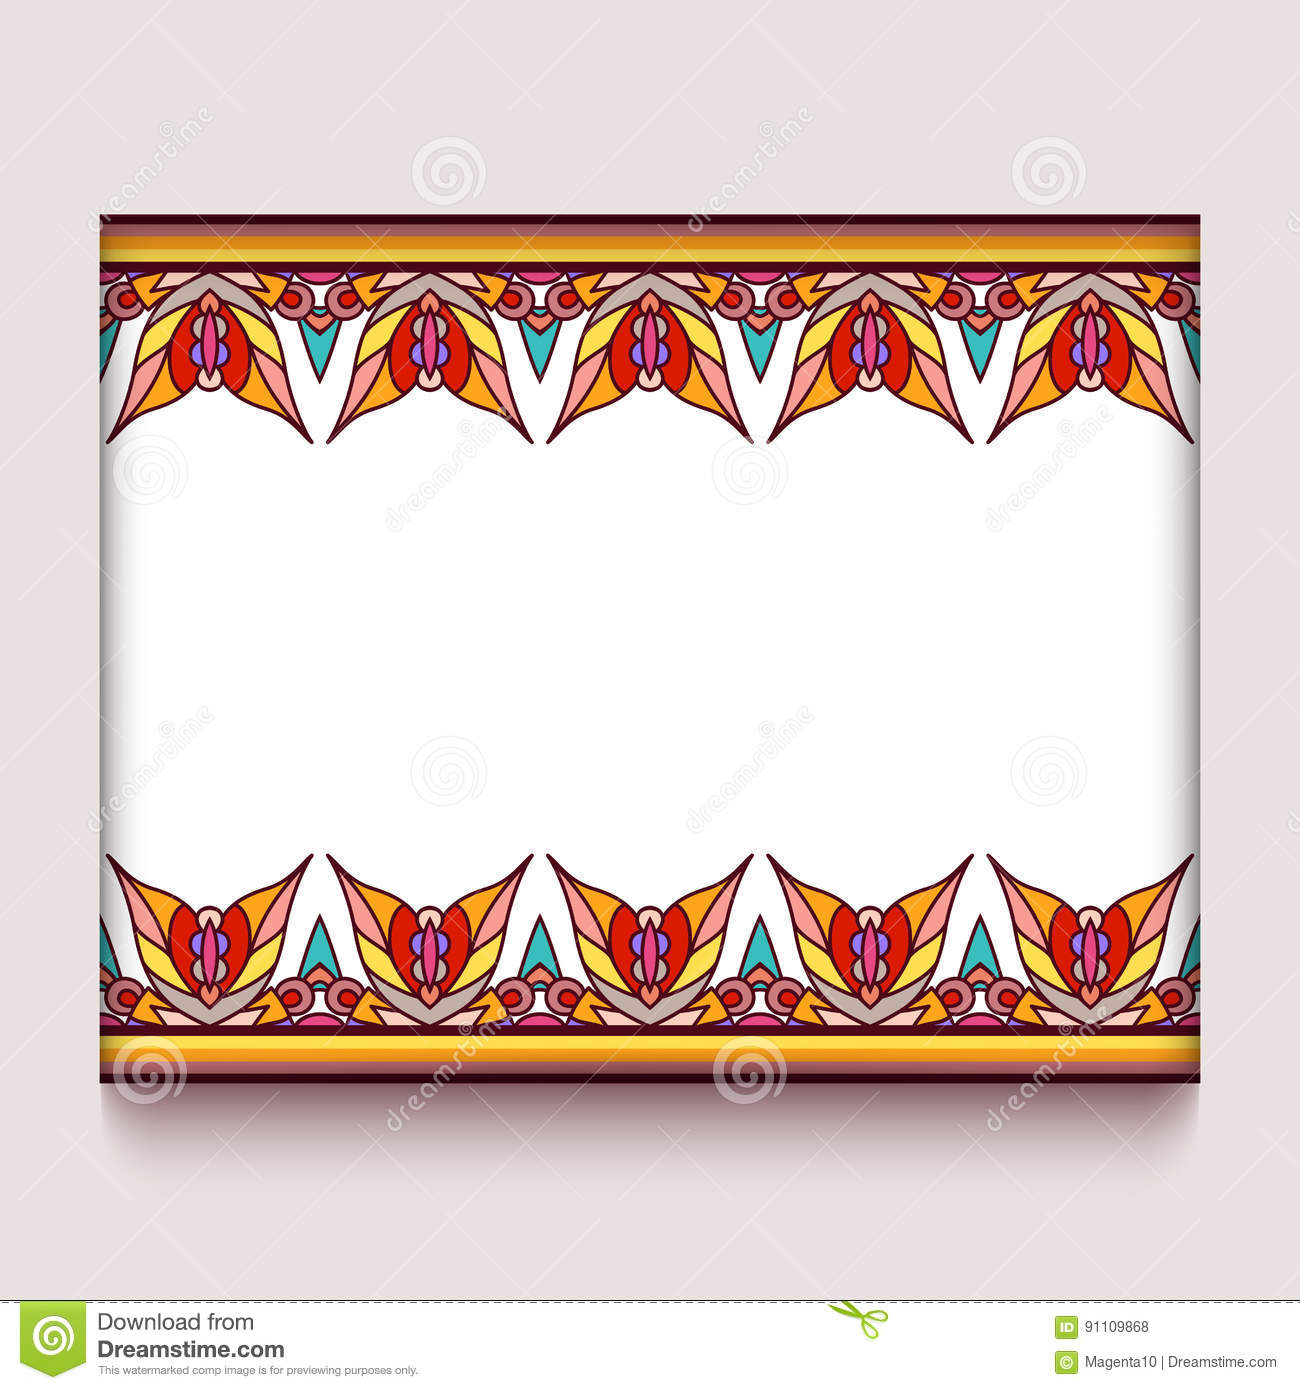 Colorful Frame With Autumn Leaves Borders Stock Vector